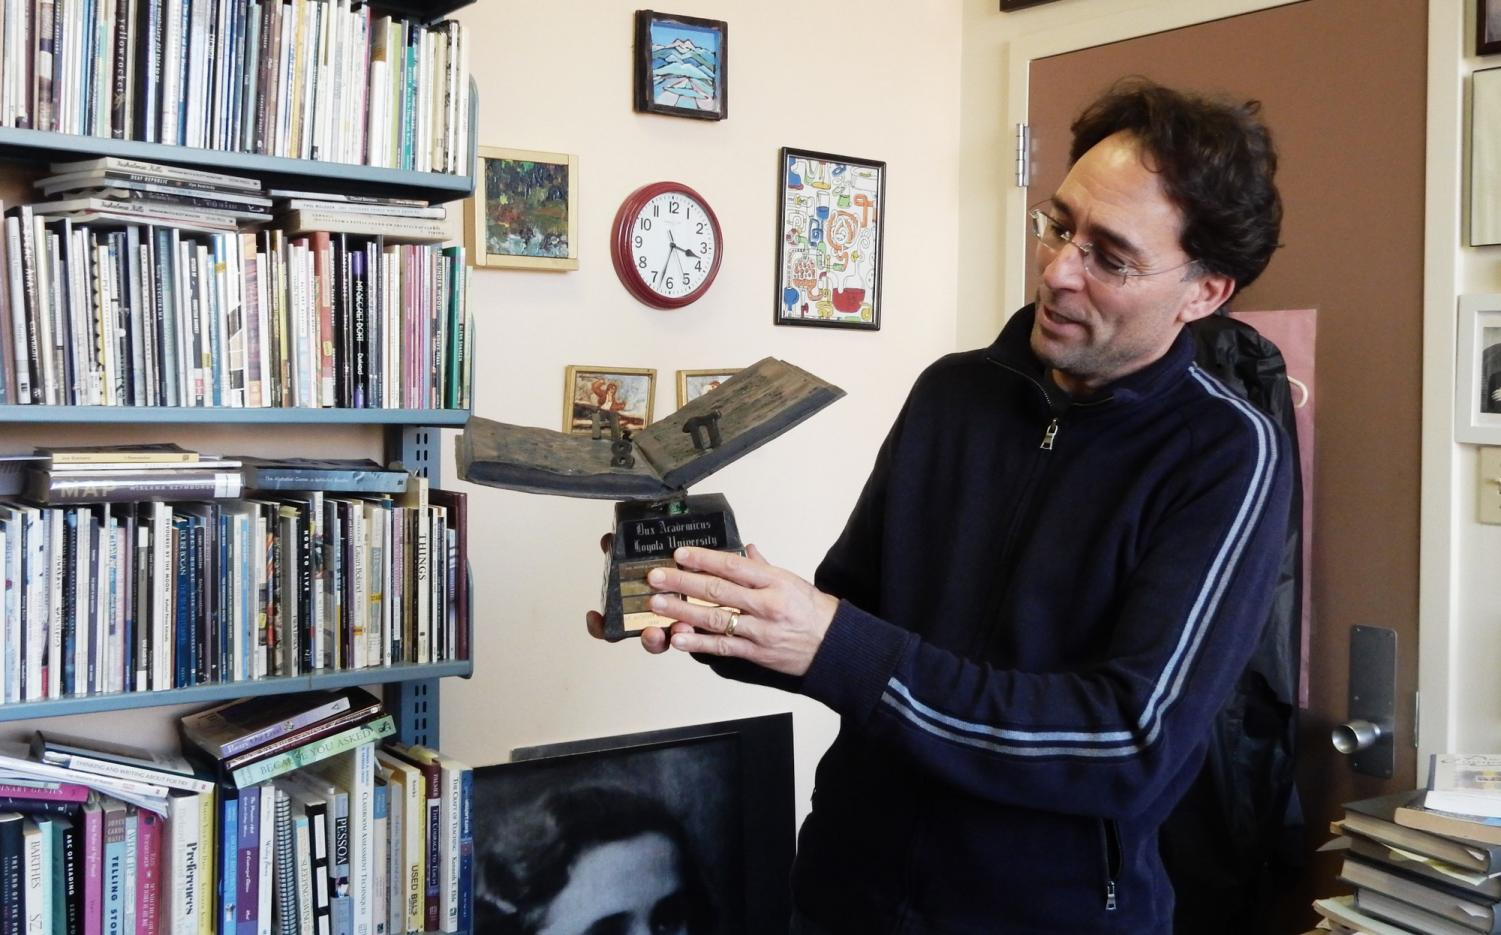 English professor and Dux Academicus Award winner Mark Yakich describes what his new trophy means to him. Pictured in his office on Jan. 23, 2020, he is surrounded by artwork from friends and books he enjoys as well as books he has written. Photo credit: Shadera Moore